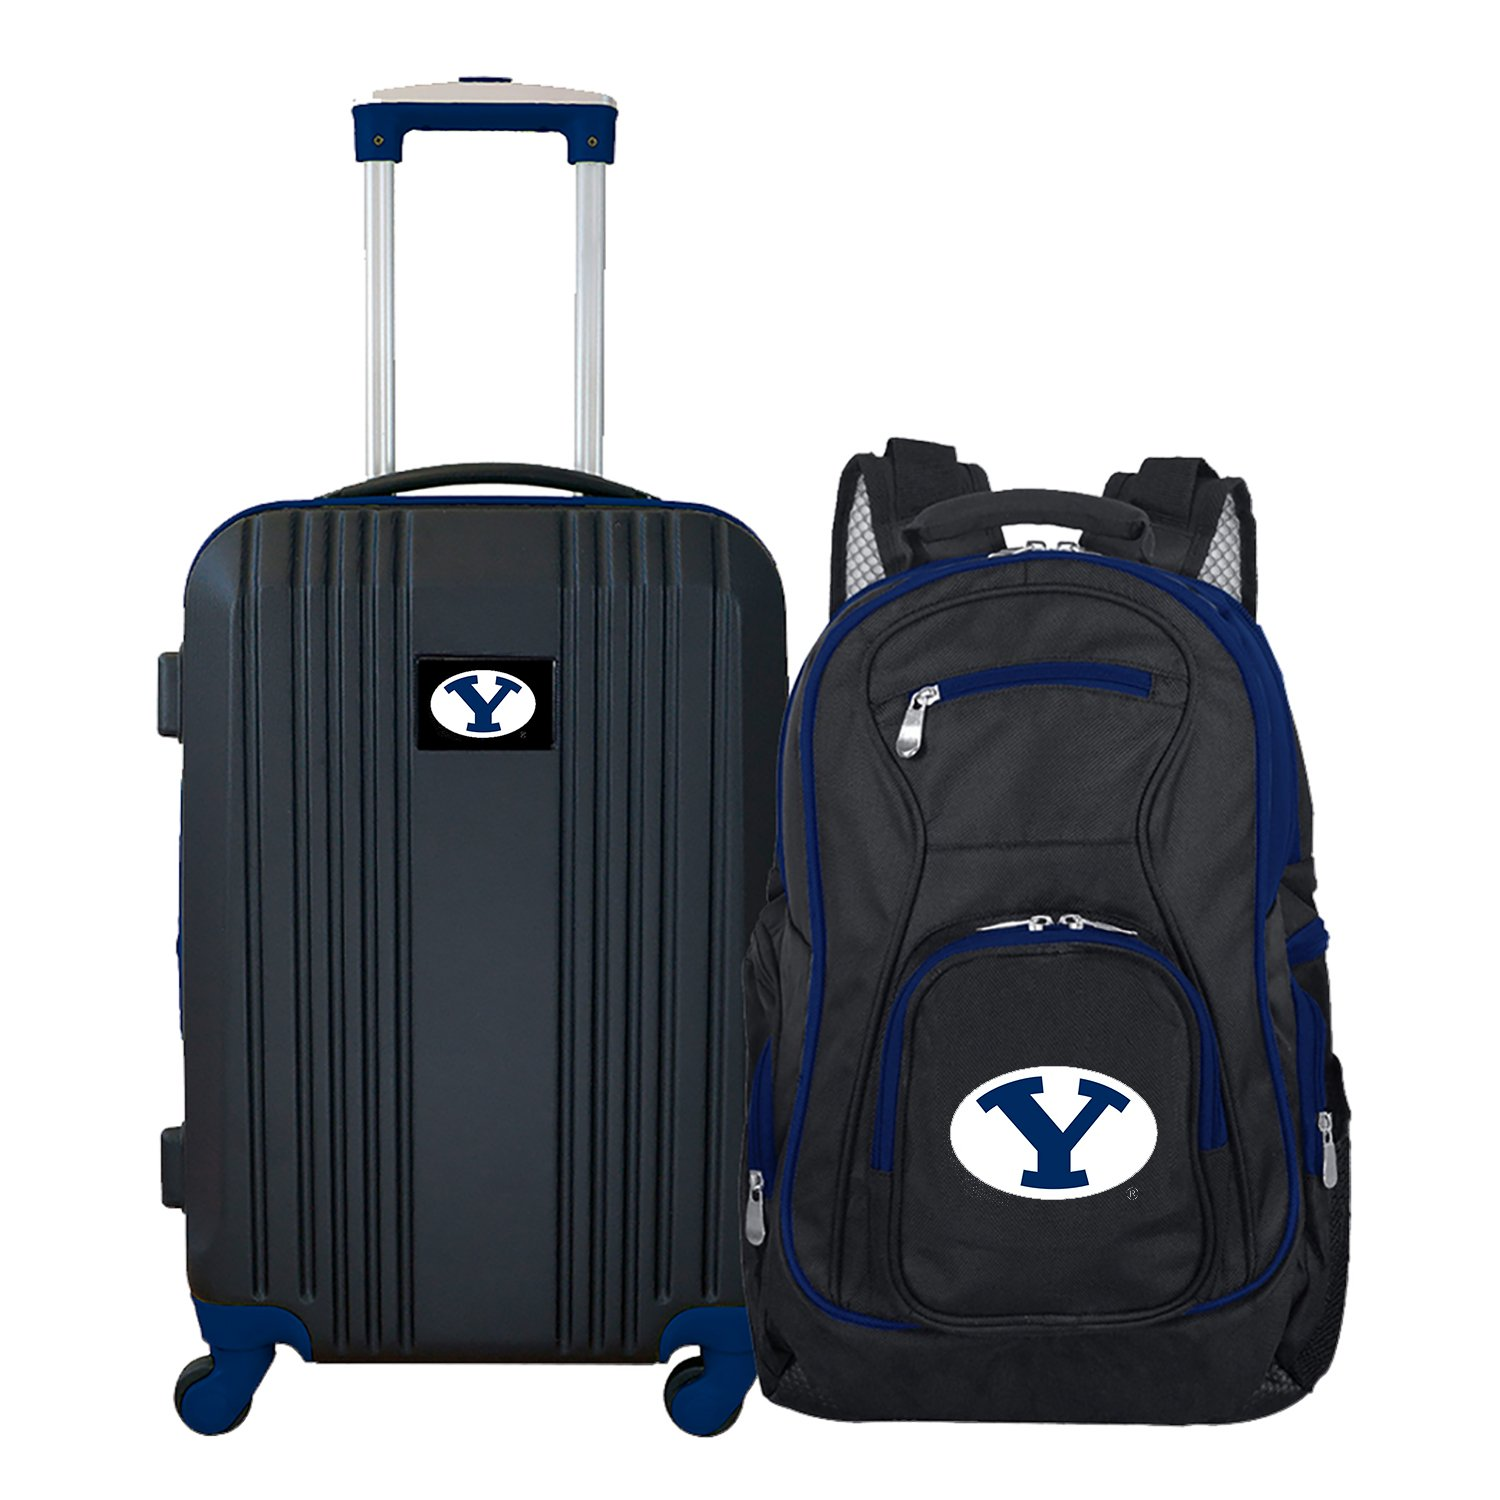 NCAA BYU Cougars 2-Piece Luggage Set